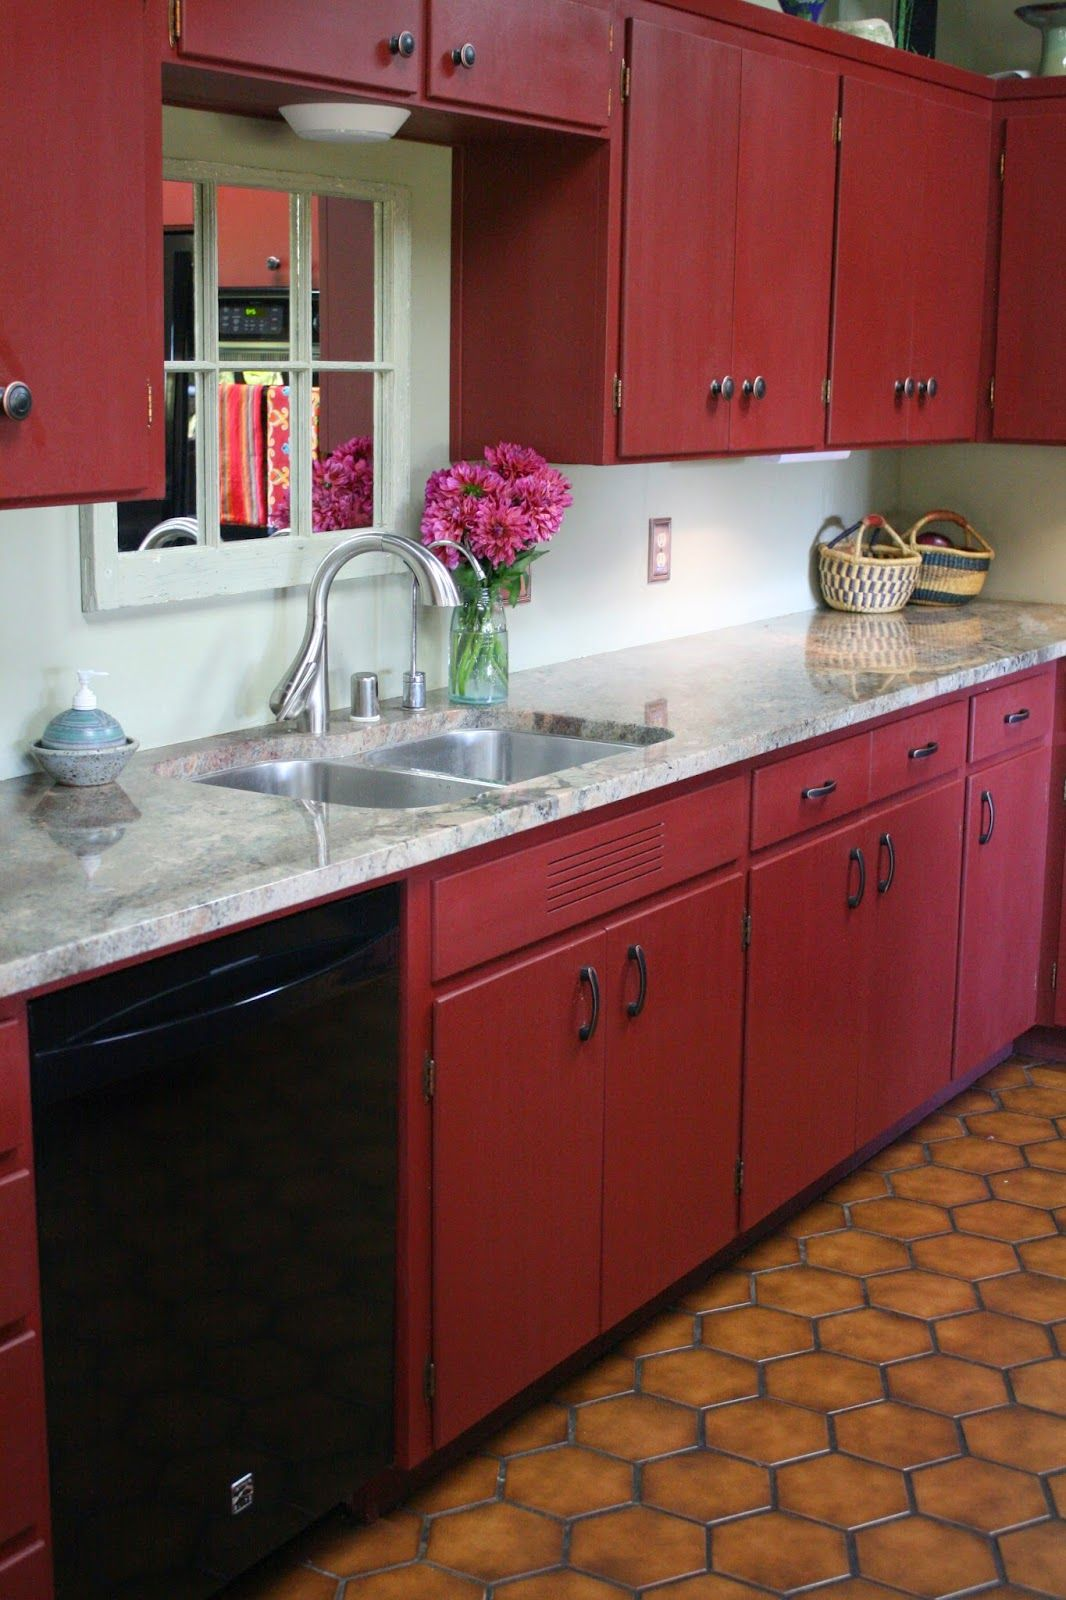 Primer Red Chalk Paint Kitchen Cabinets Red Kitchen Cabinets Red Kitchen Decor Chalk Paint Kitchen Cabinets